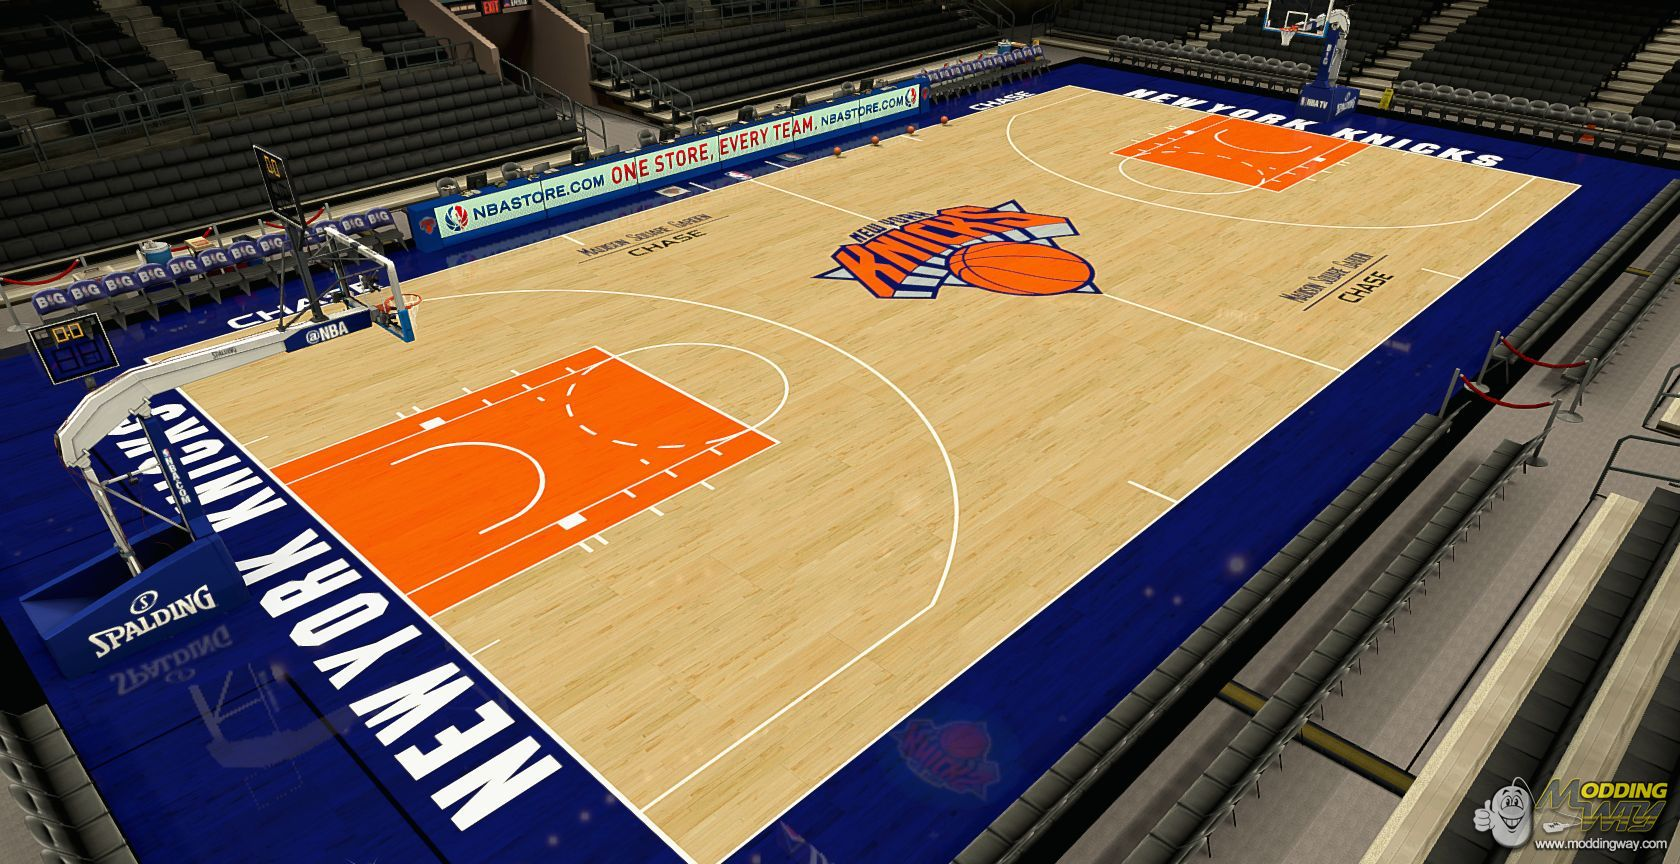 Nba basketball court square feet 100 75m to feet for How big is a basketball court